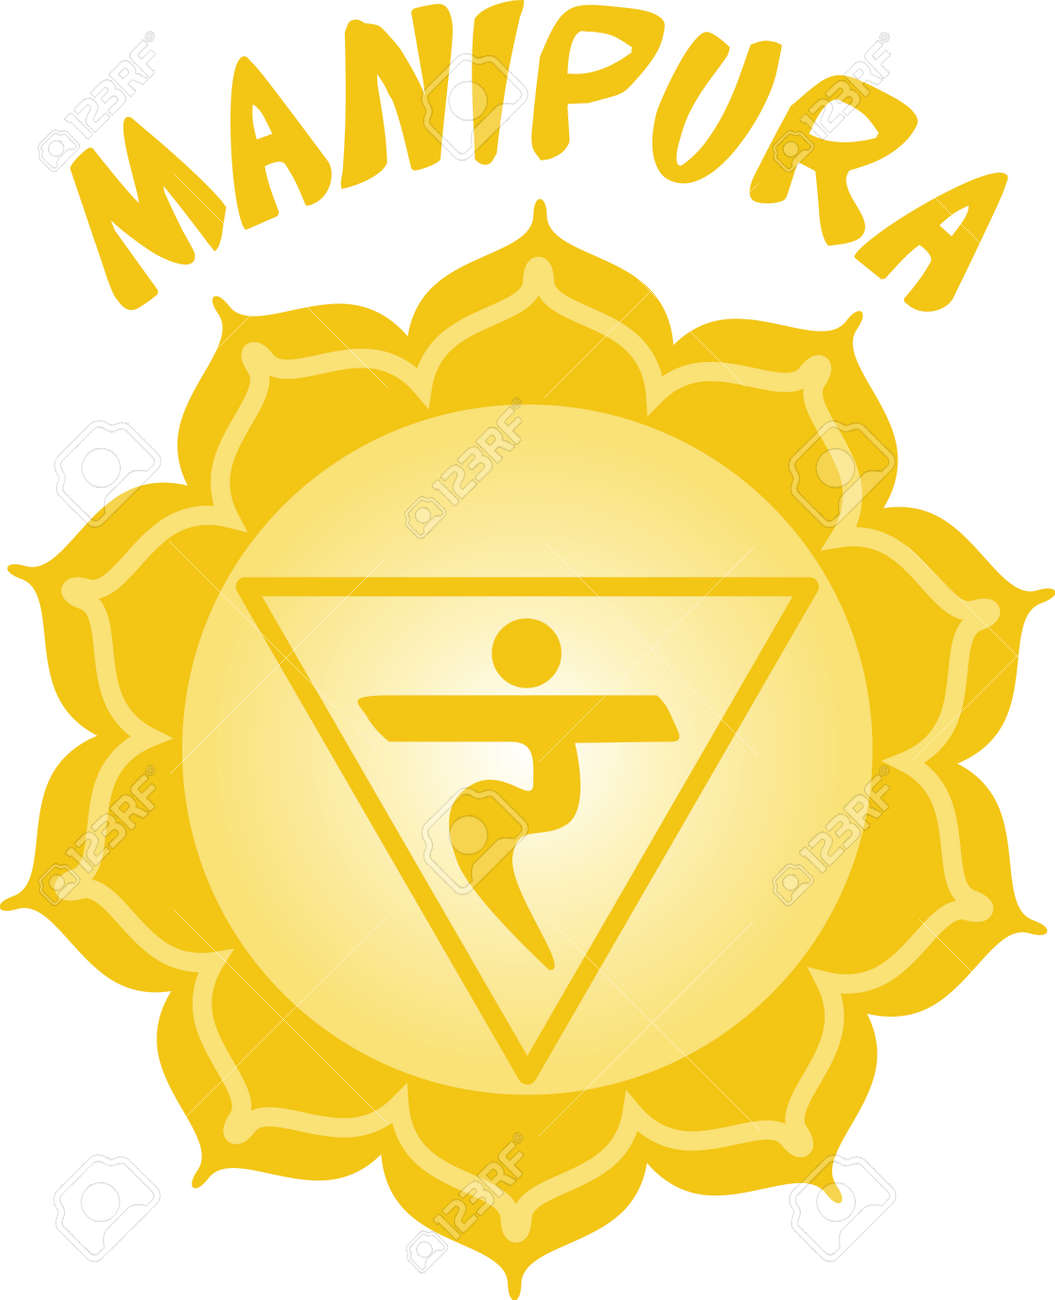 Chakra Triangle For Hindu Religious Sayings And Symbols Royalty